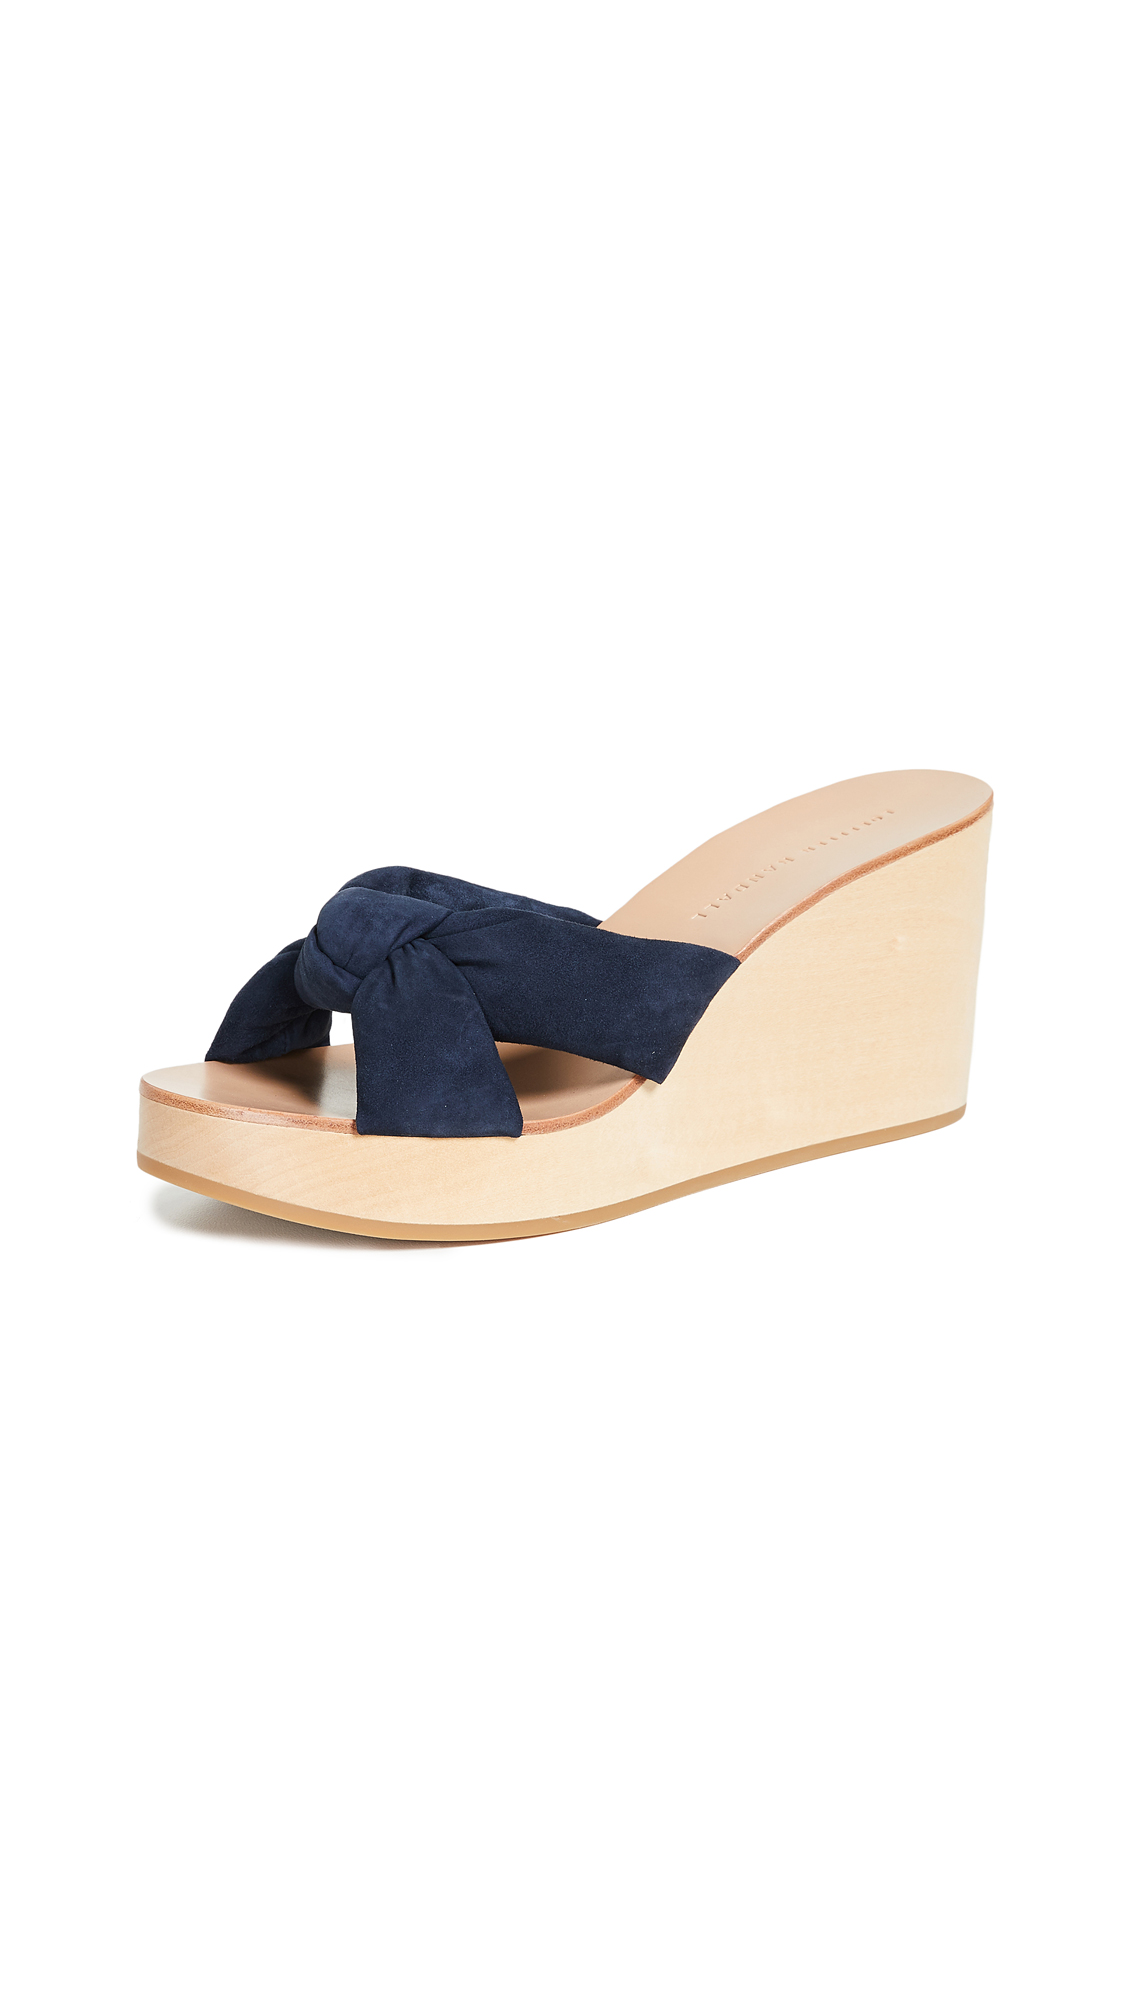 Photo of Loeffler Randall Taylor Wedge Mules online shoes sales